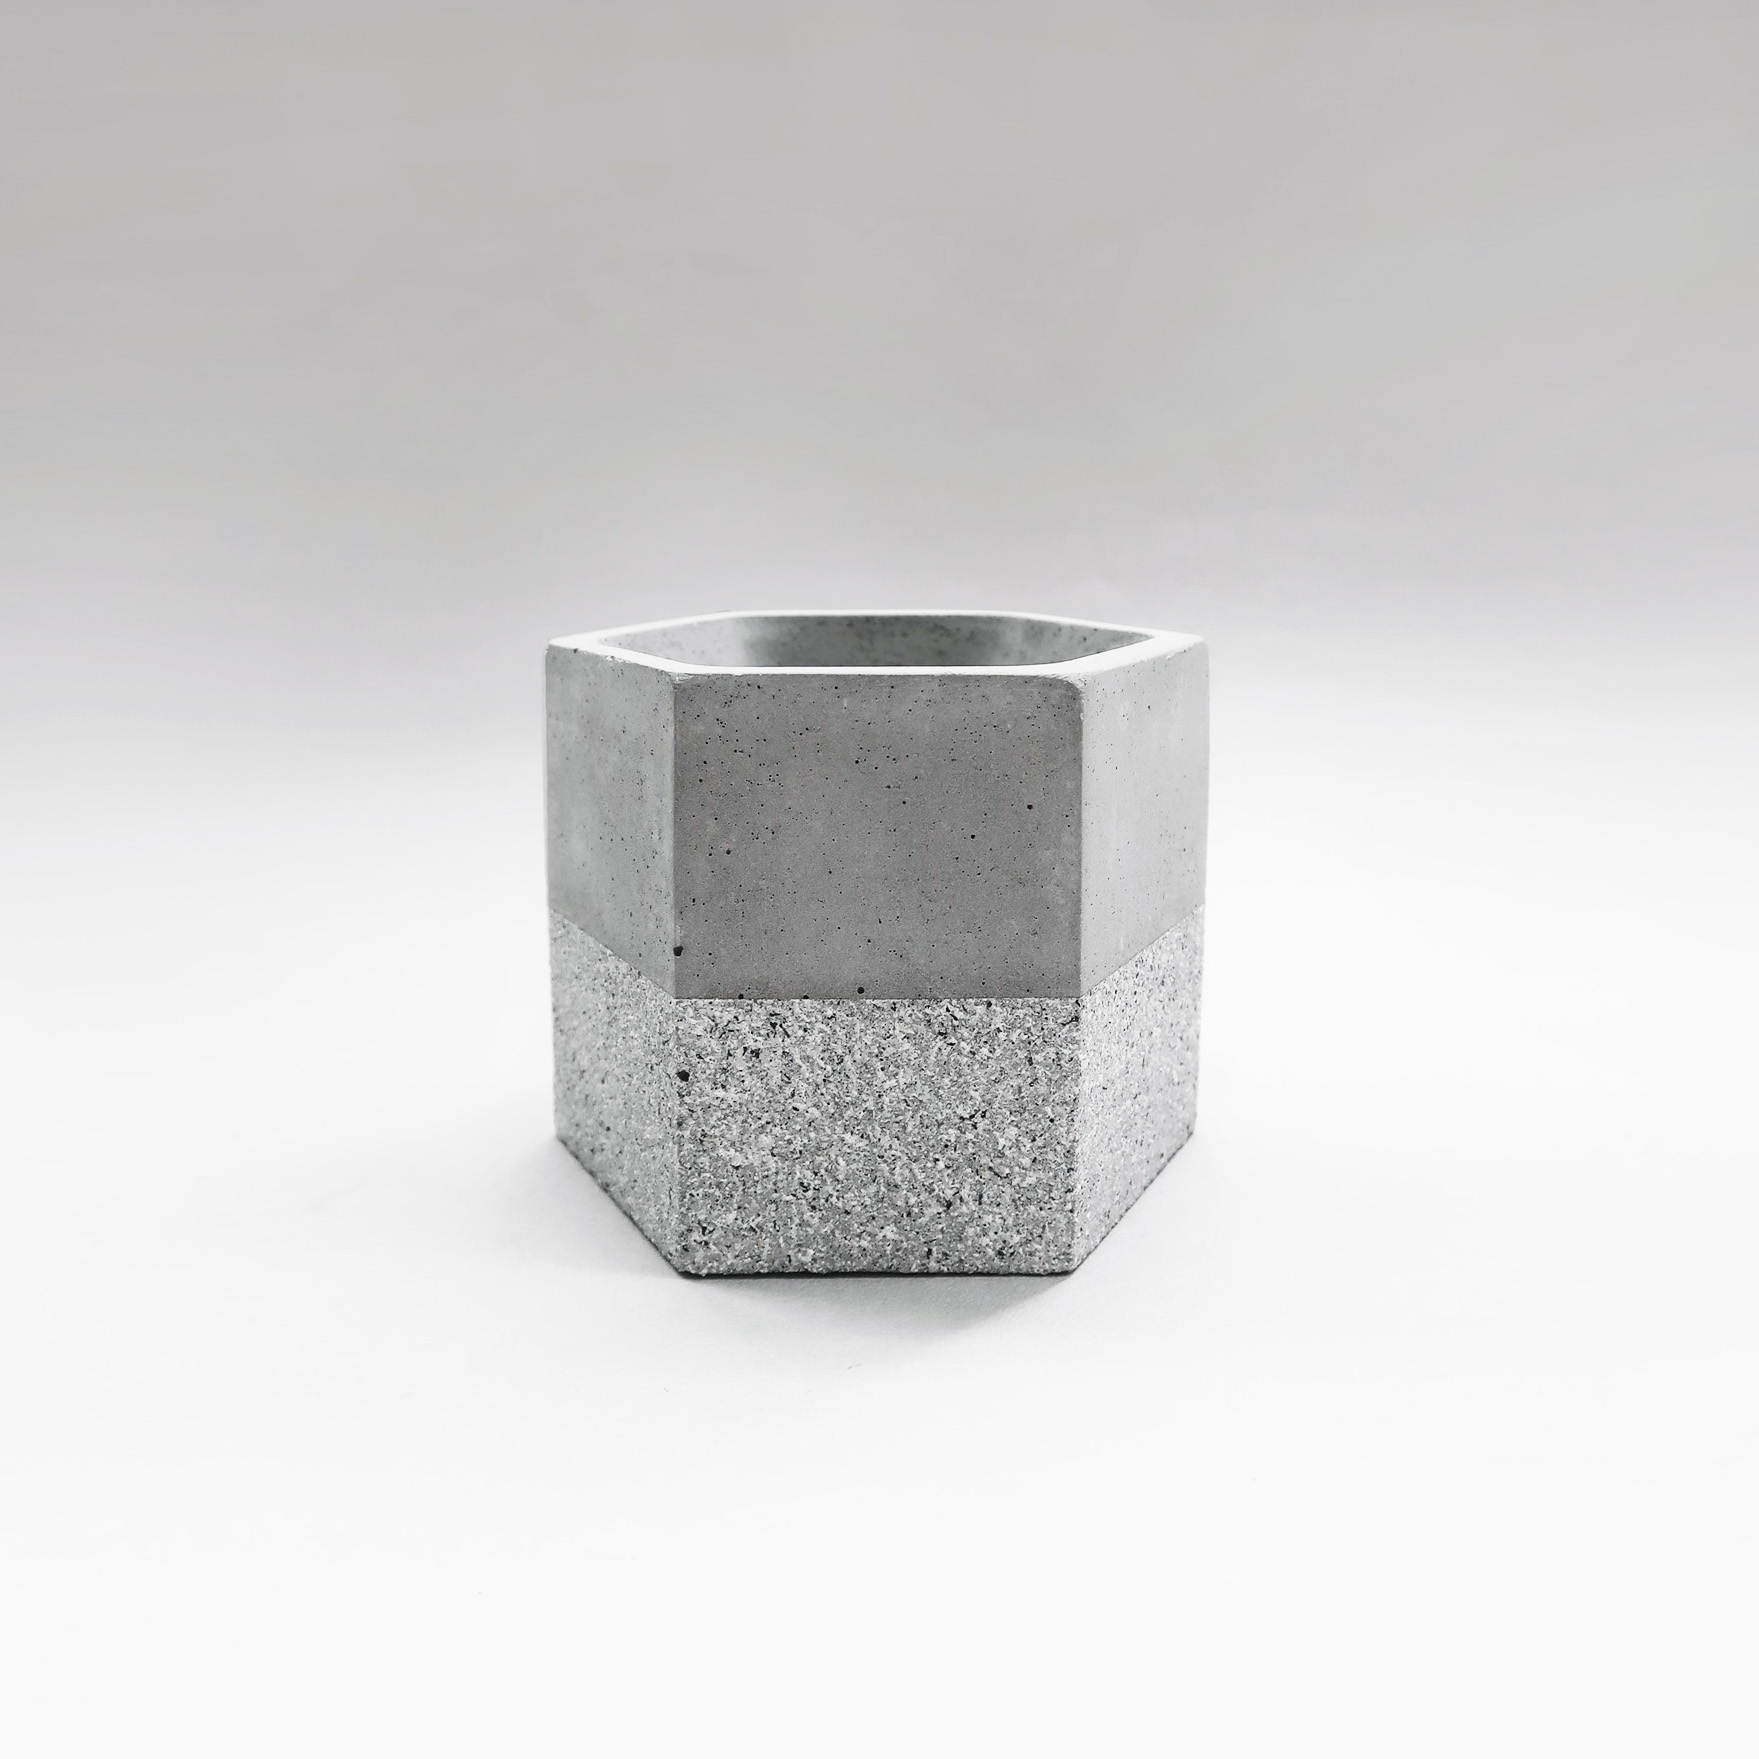 GRANITE 花崗岩六角水泥盆器 / hexagonal concrete pot